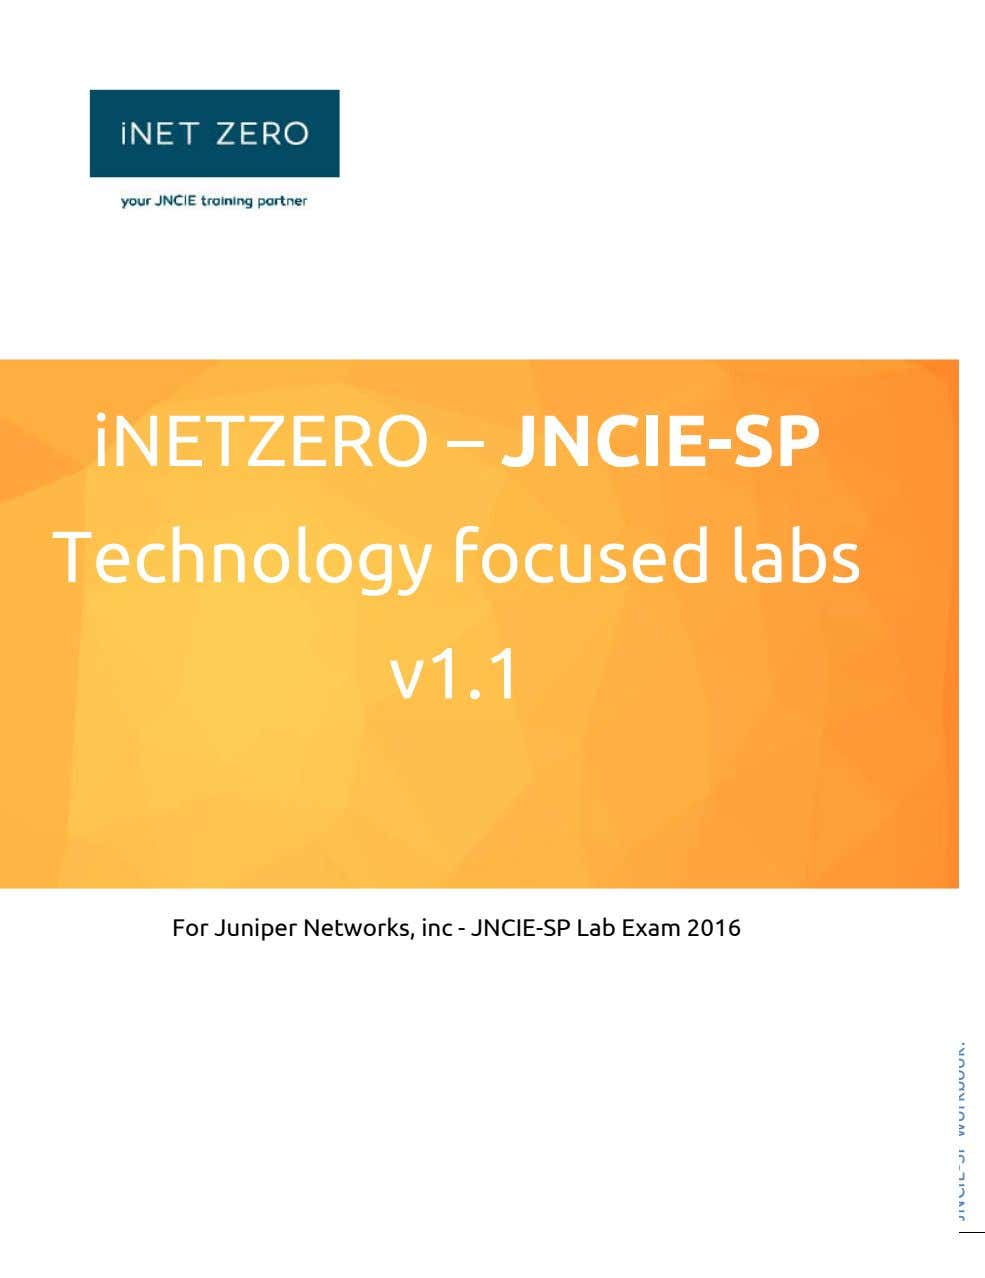 iNETZERO – JNCIE-SP Technology focused labs v1.1 For Juniper Networks, inc - JNCIE-SP Lab Exam